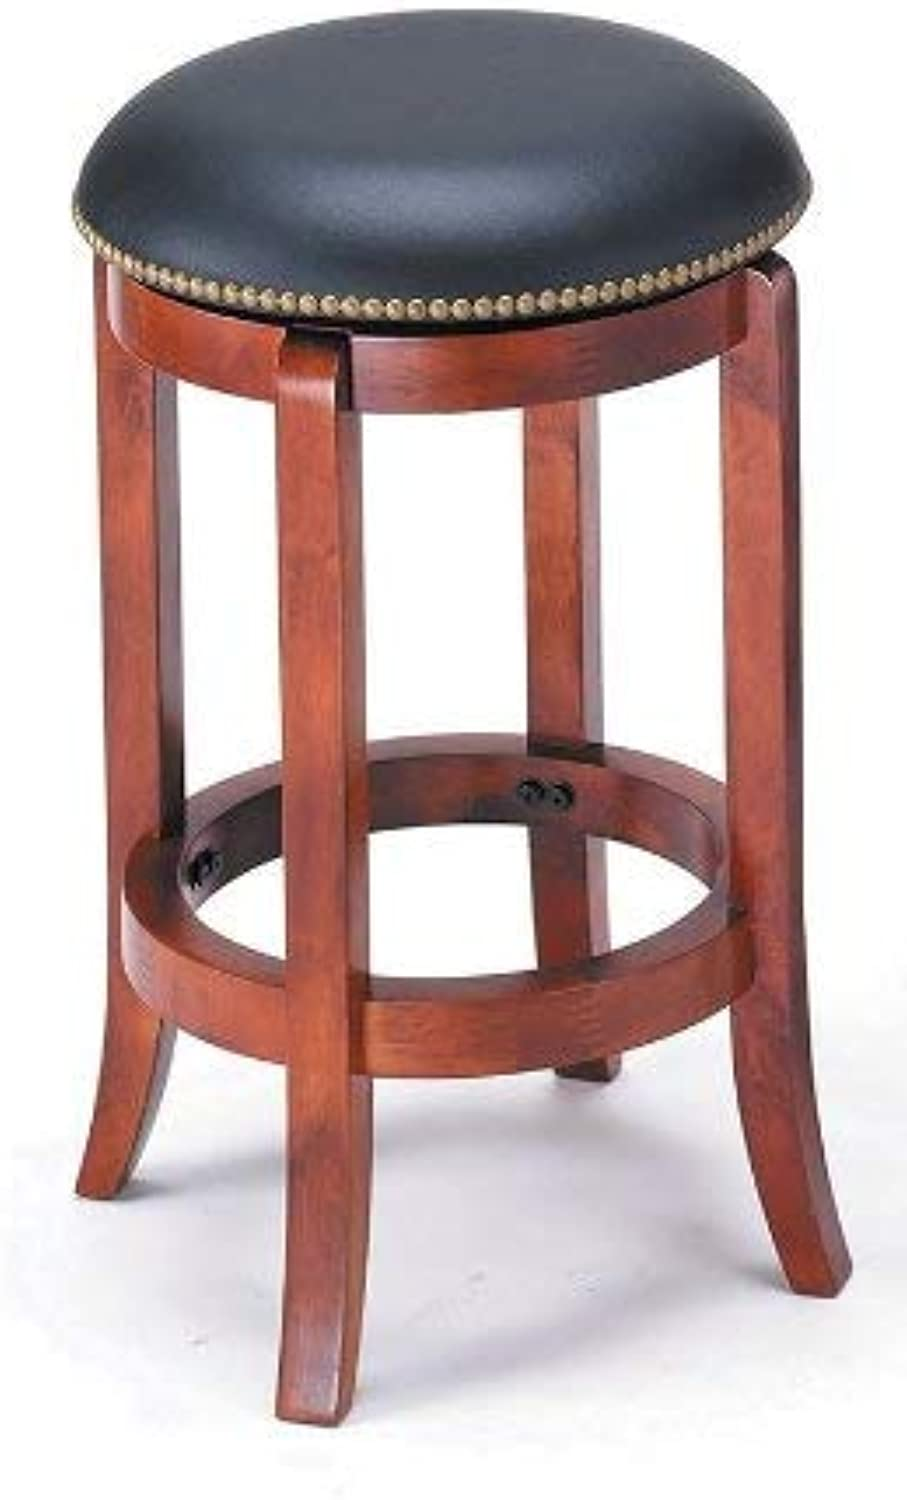 ADF 24-Inch Swivel Bar Stool with Nailhead Trim, Cherry